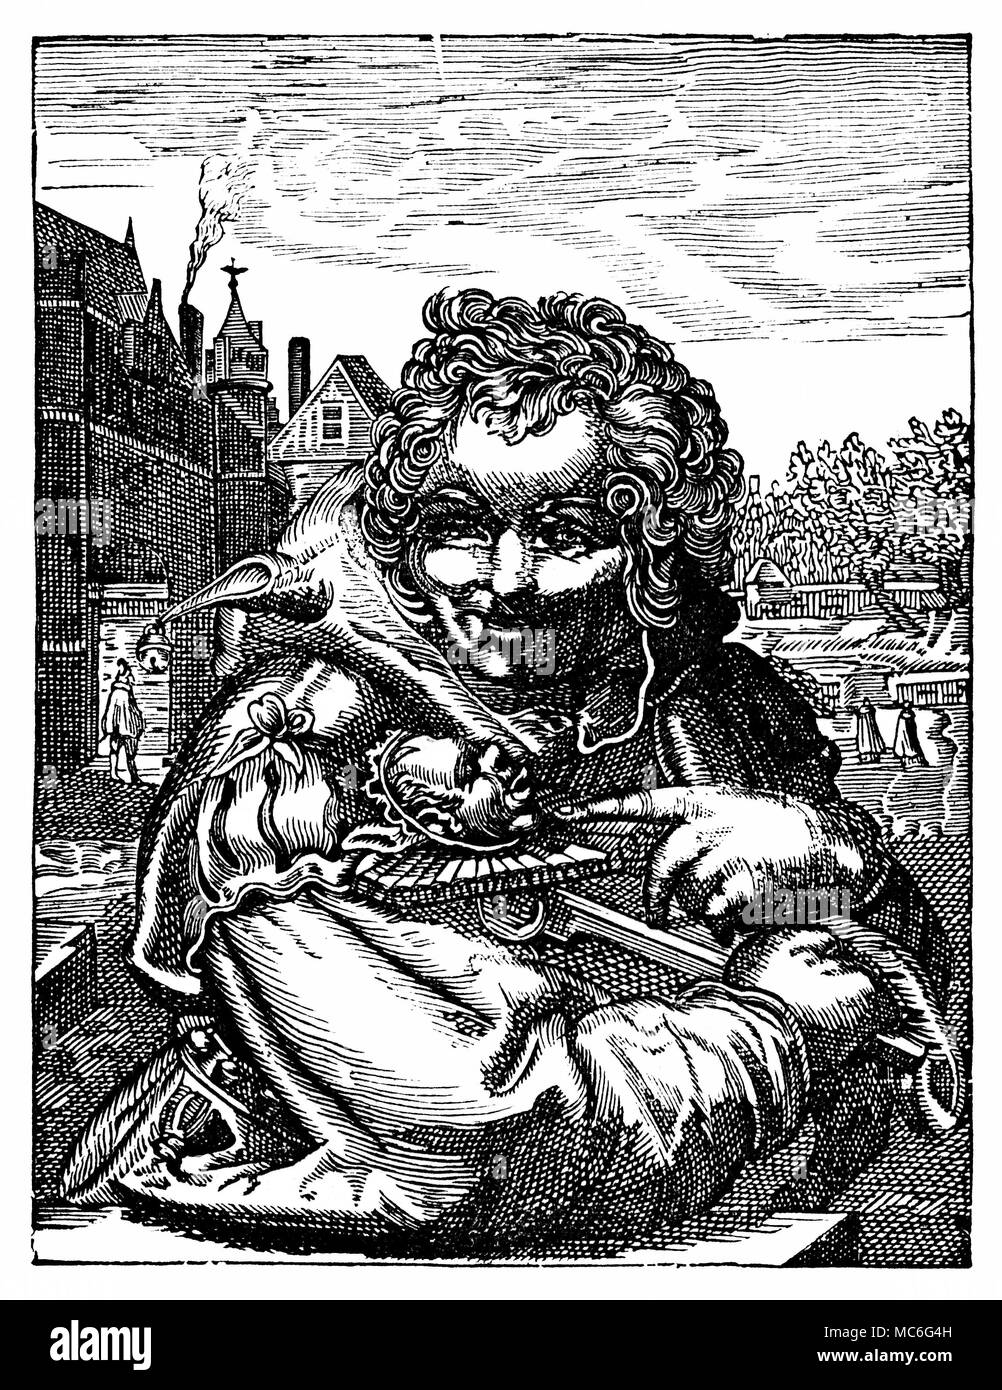 CLOWNS - FOOLS Woodengraving, reference to the Feast of Fools, when the grinning bauble, or fool's head, was held as God.  Frontispiece to William Hone, Ancient Mysteries Described, Especially the English Miracle Plays, 1823. - Stock Image